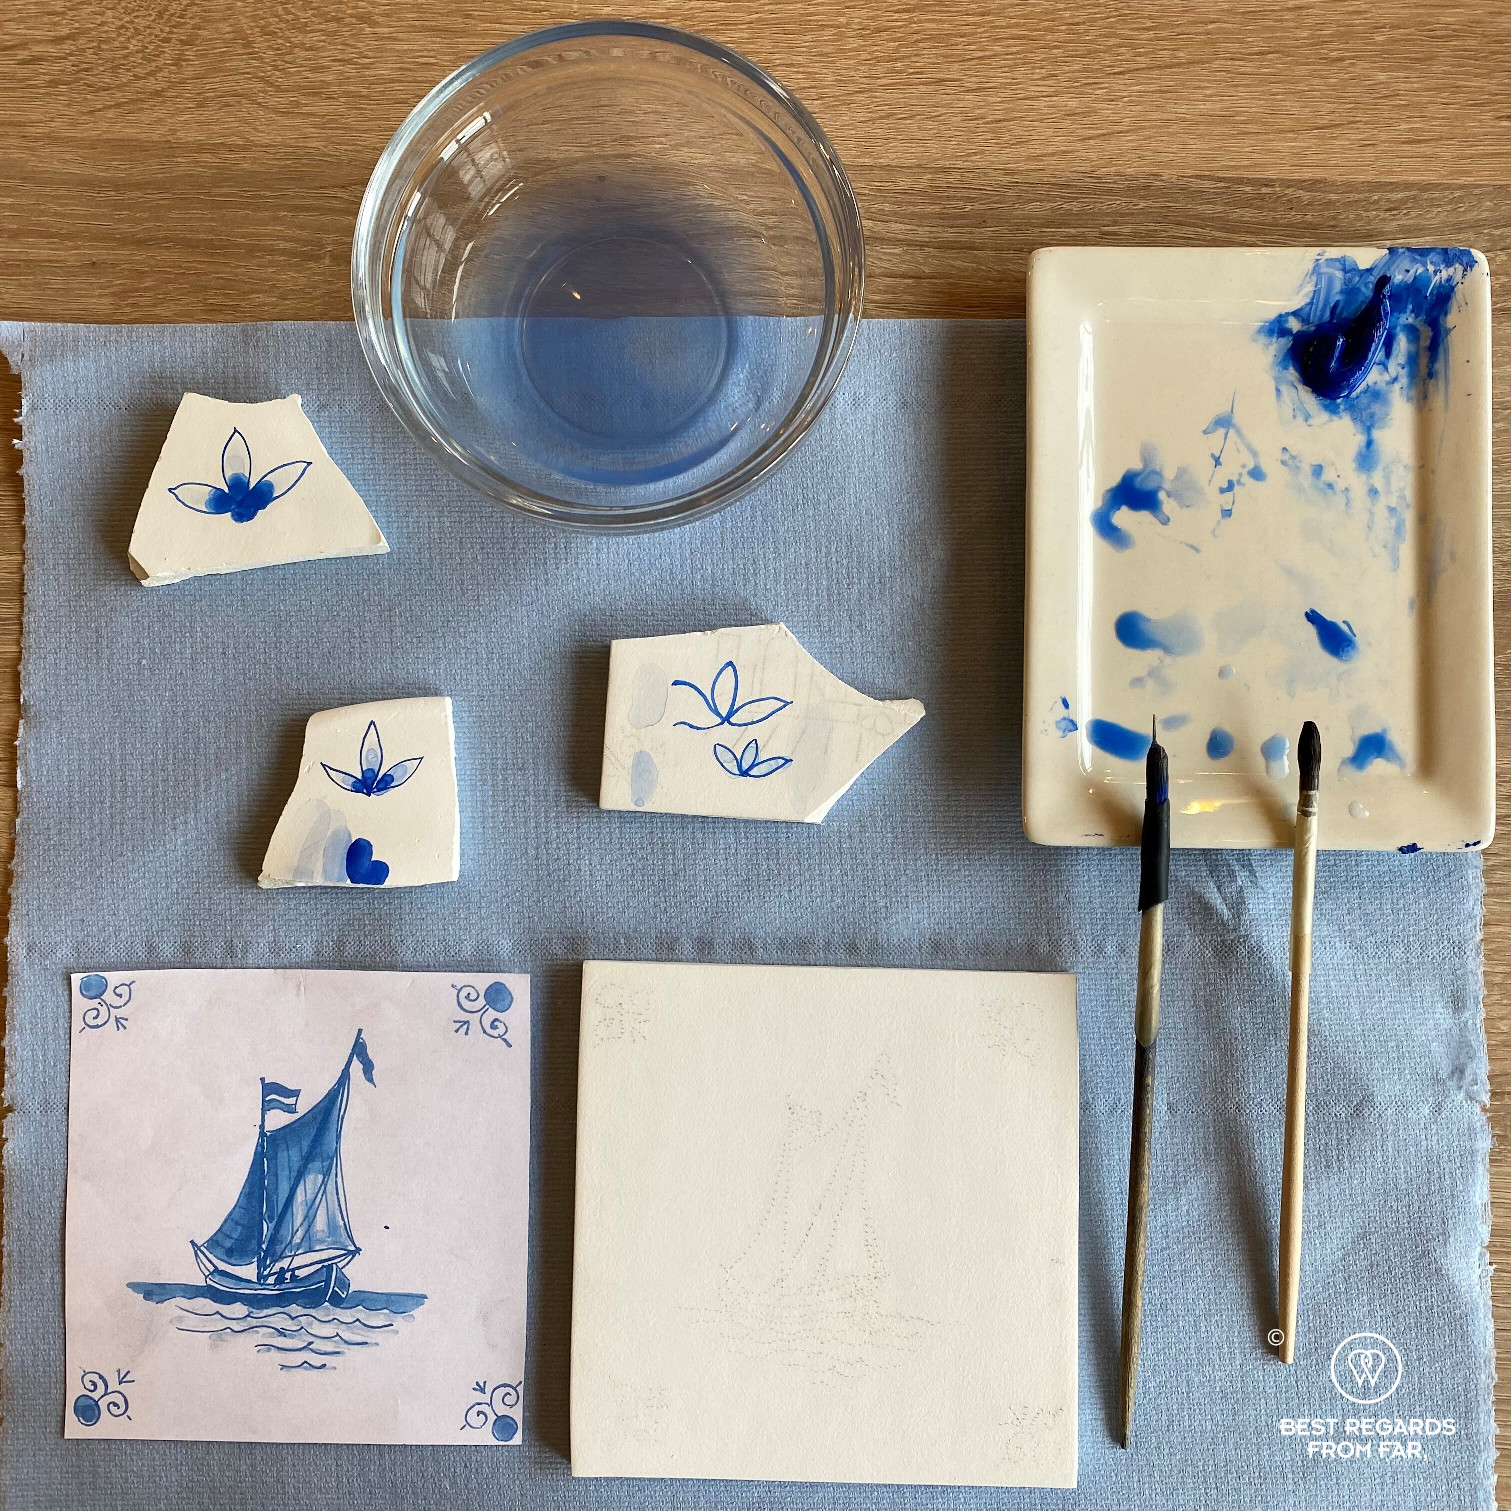 Contours of the motif of a sailboat on a tile during a tile painting workshop at Royal Delft, the Netherlands